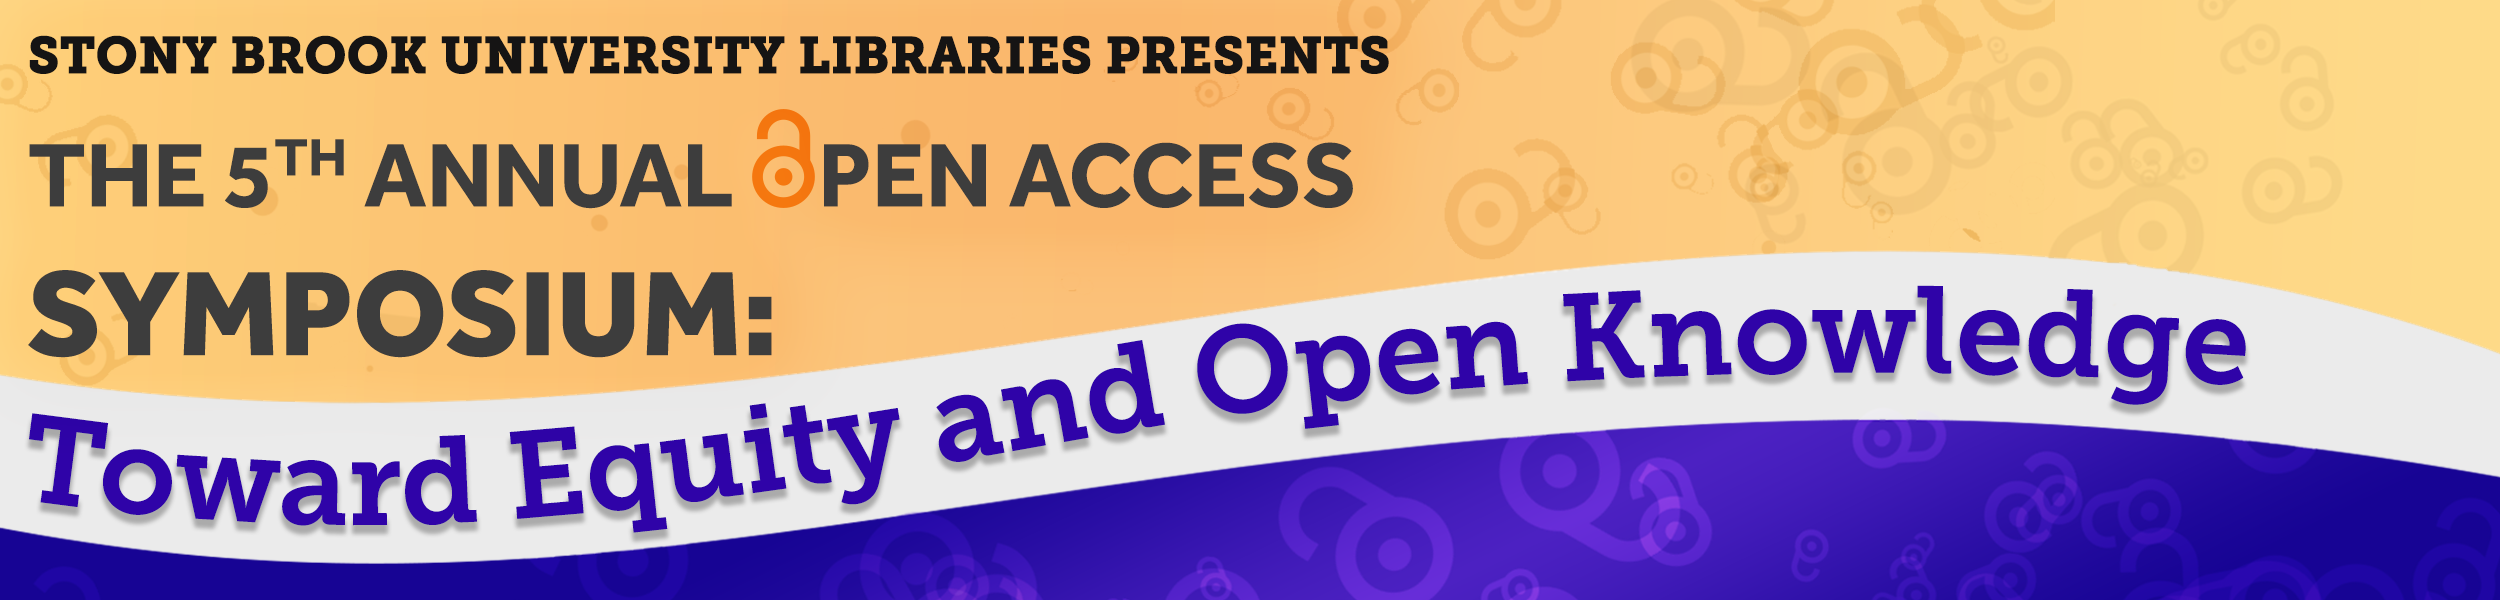 SBU Open Access Symposium